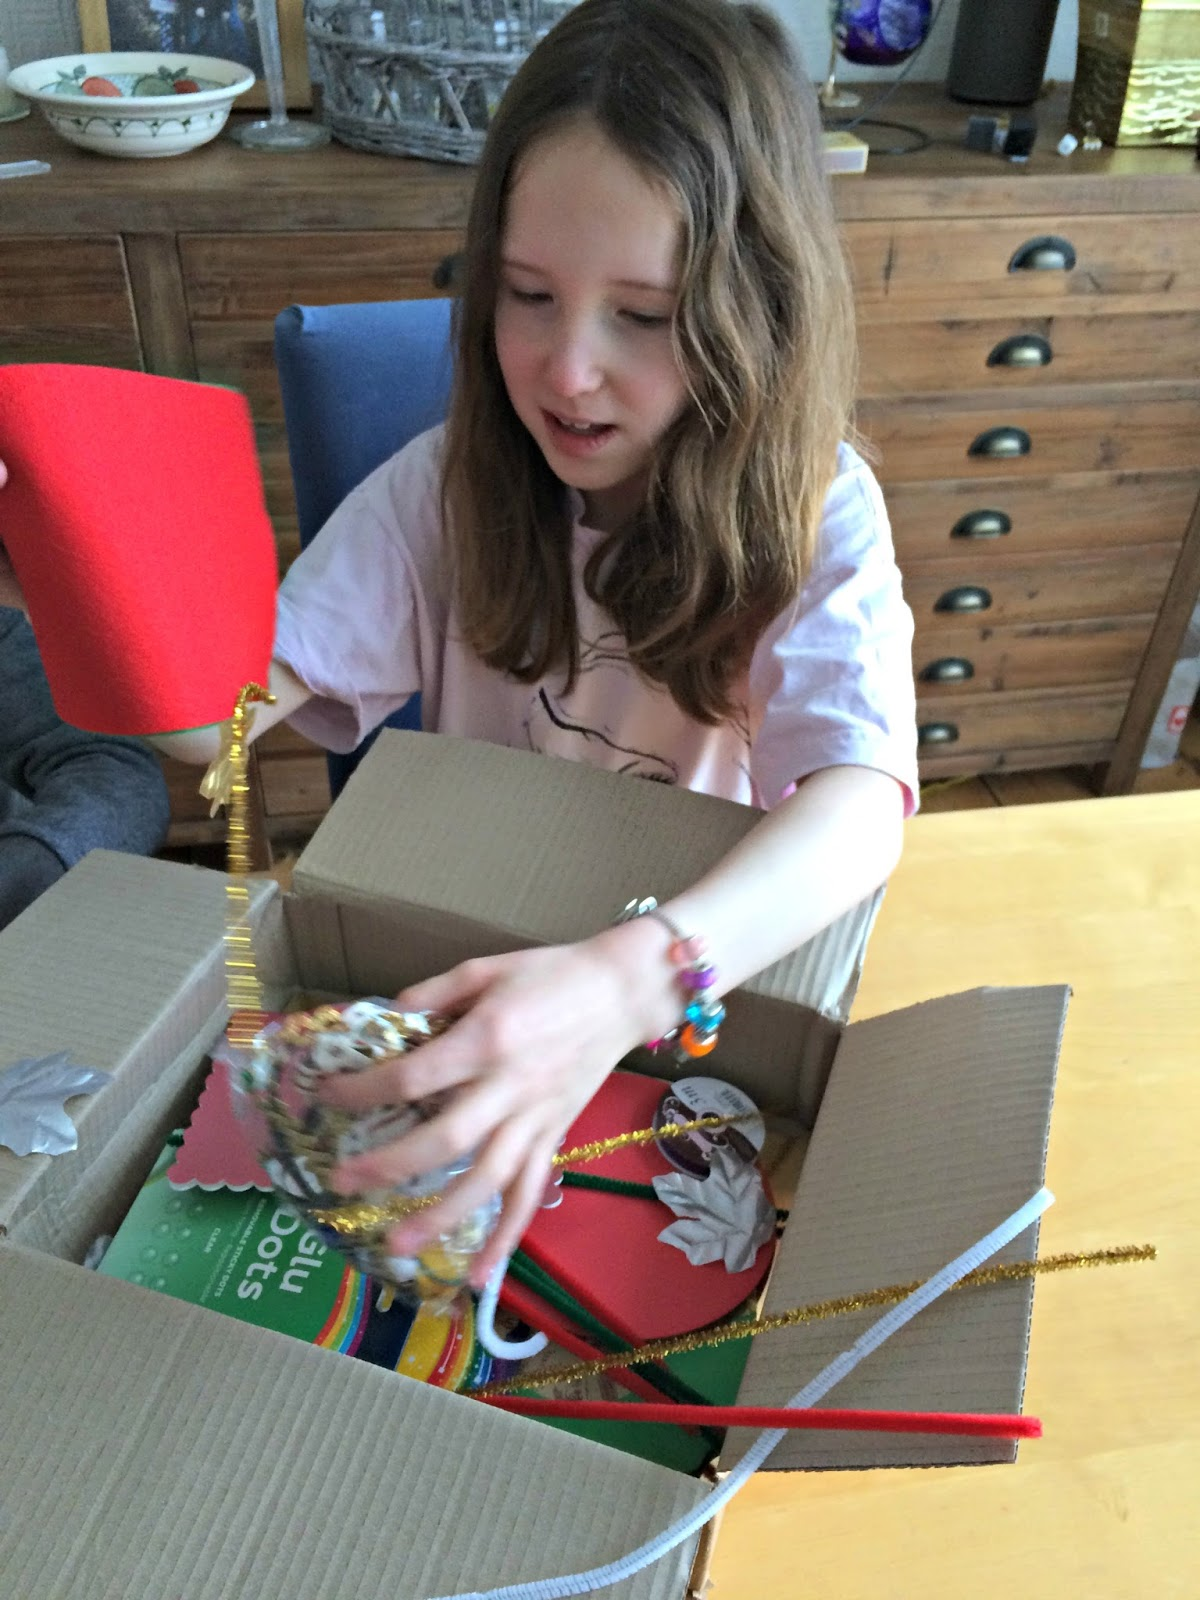 Caitlin opening the Bostik craft box